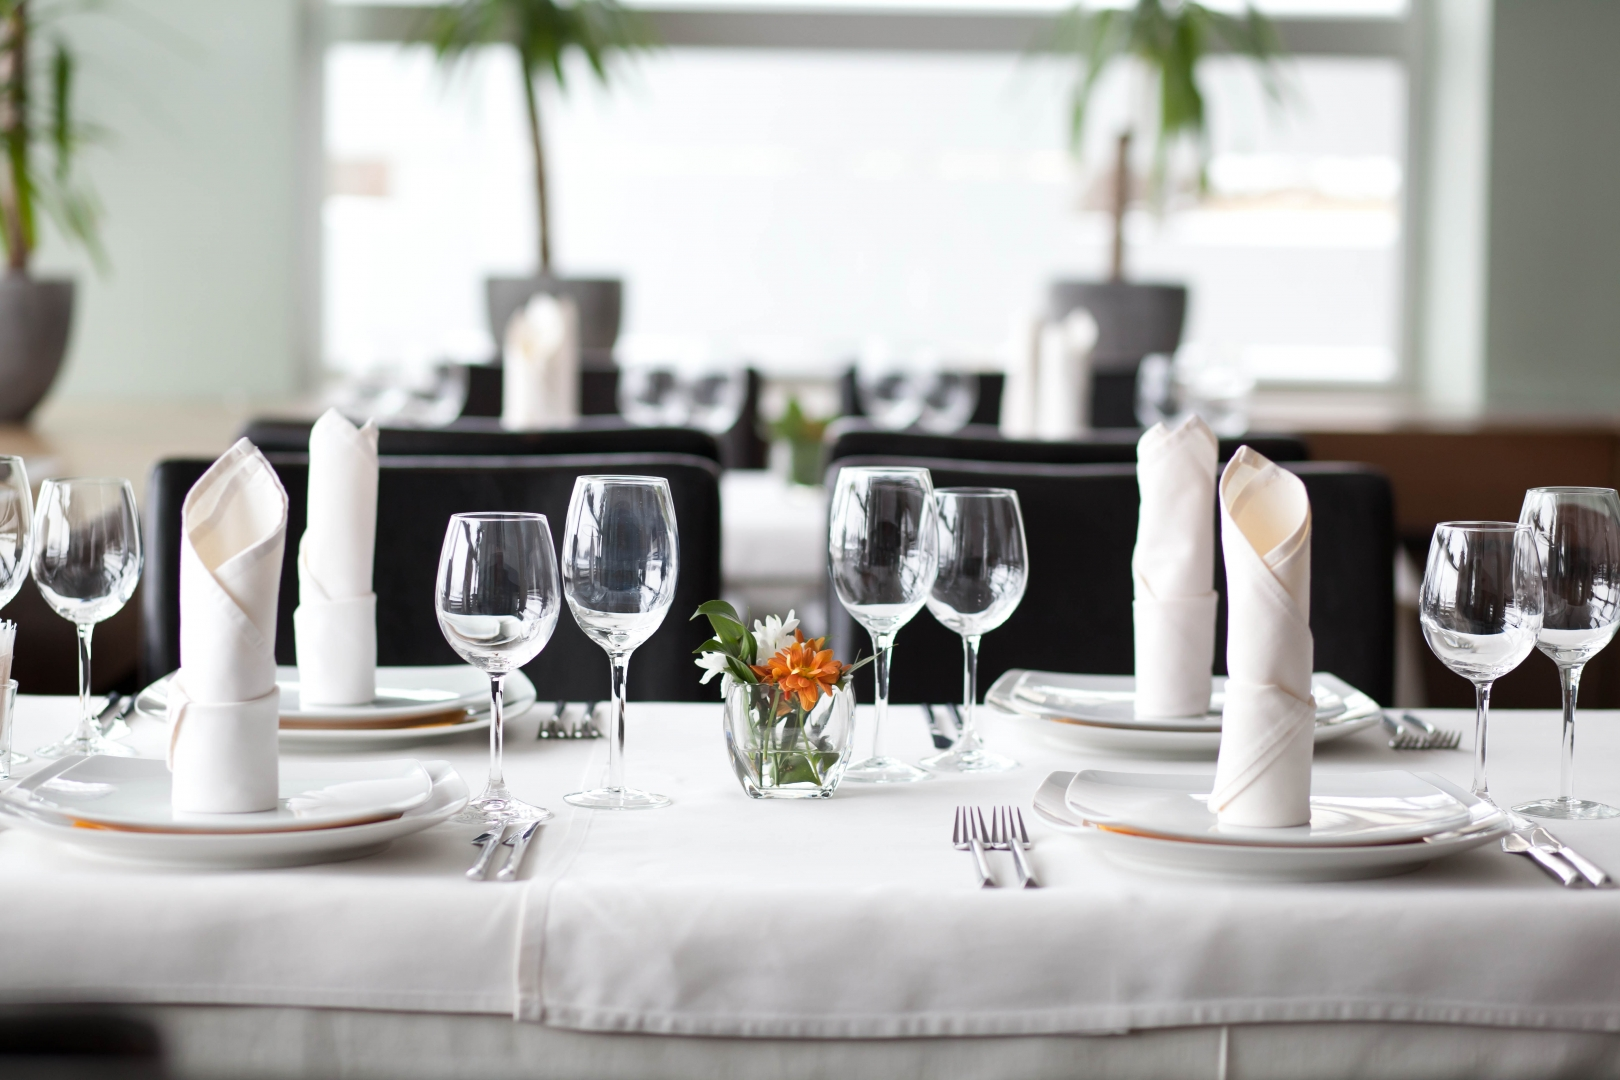 table side image of place settings at a fine dining restaurant